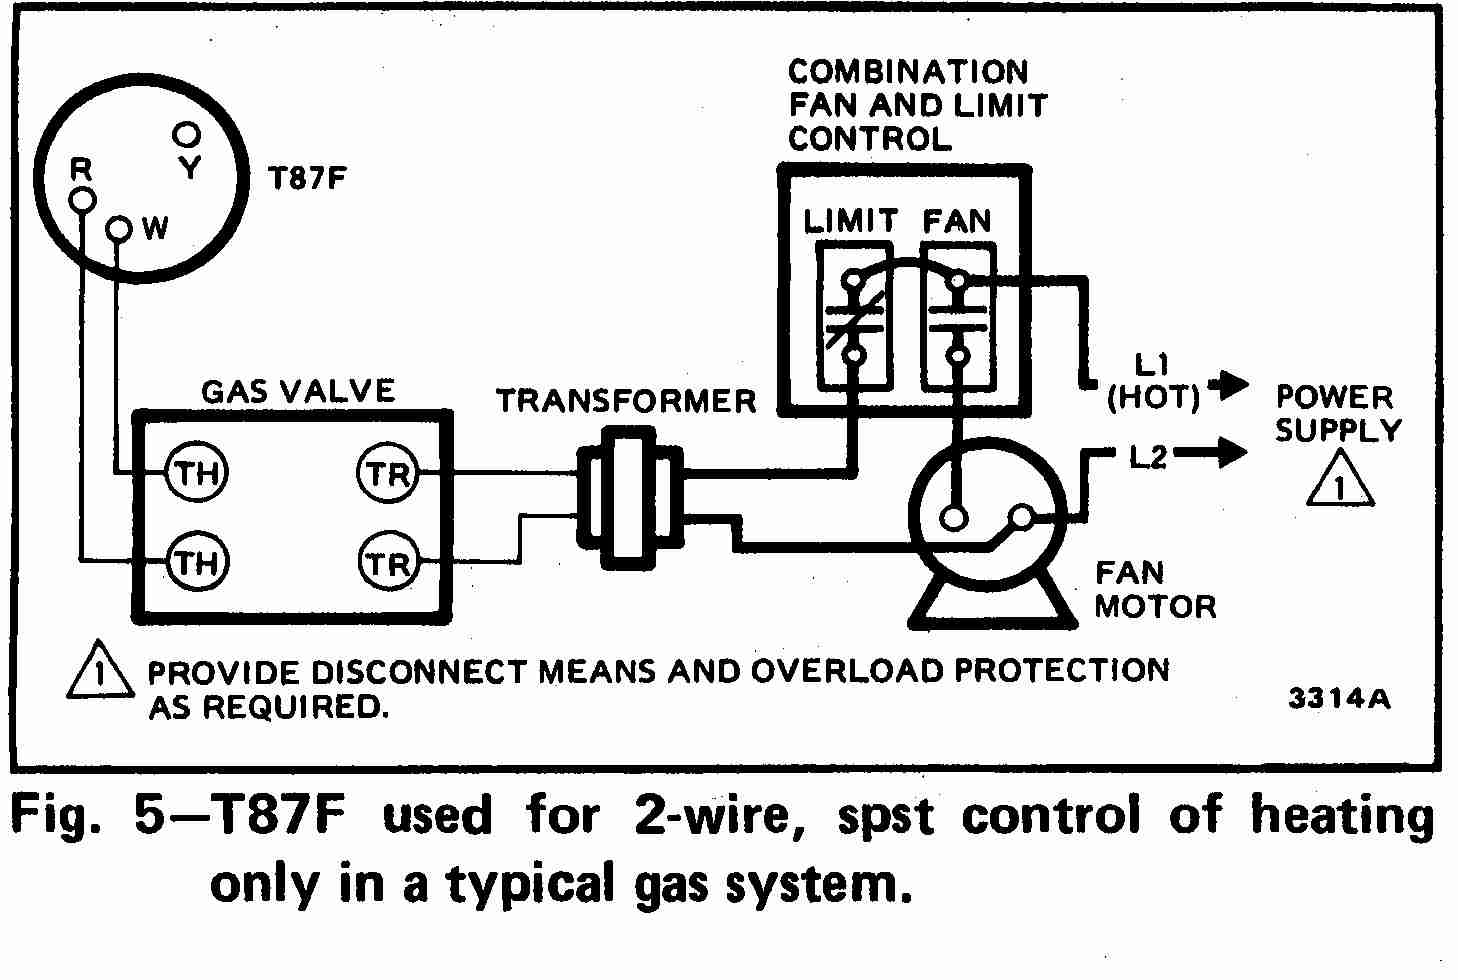 Room thermostat wiring diagrams for hvac systems honeywell t87f thermostat wiring diagram for 2 wire spst control of heating only in asfbconference2016 Choice Image